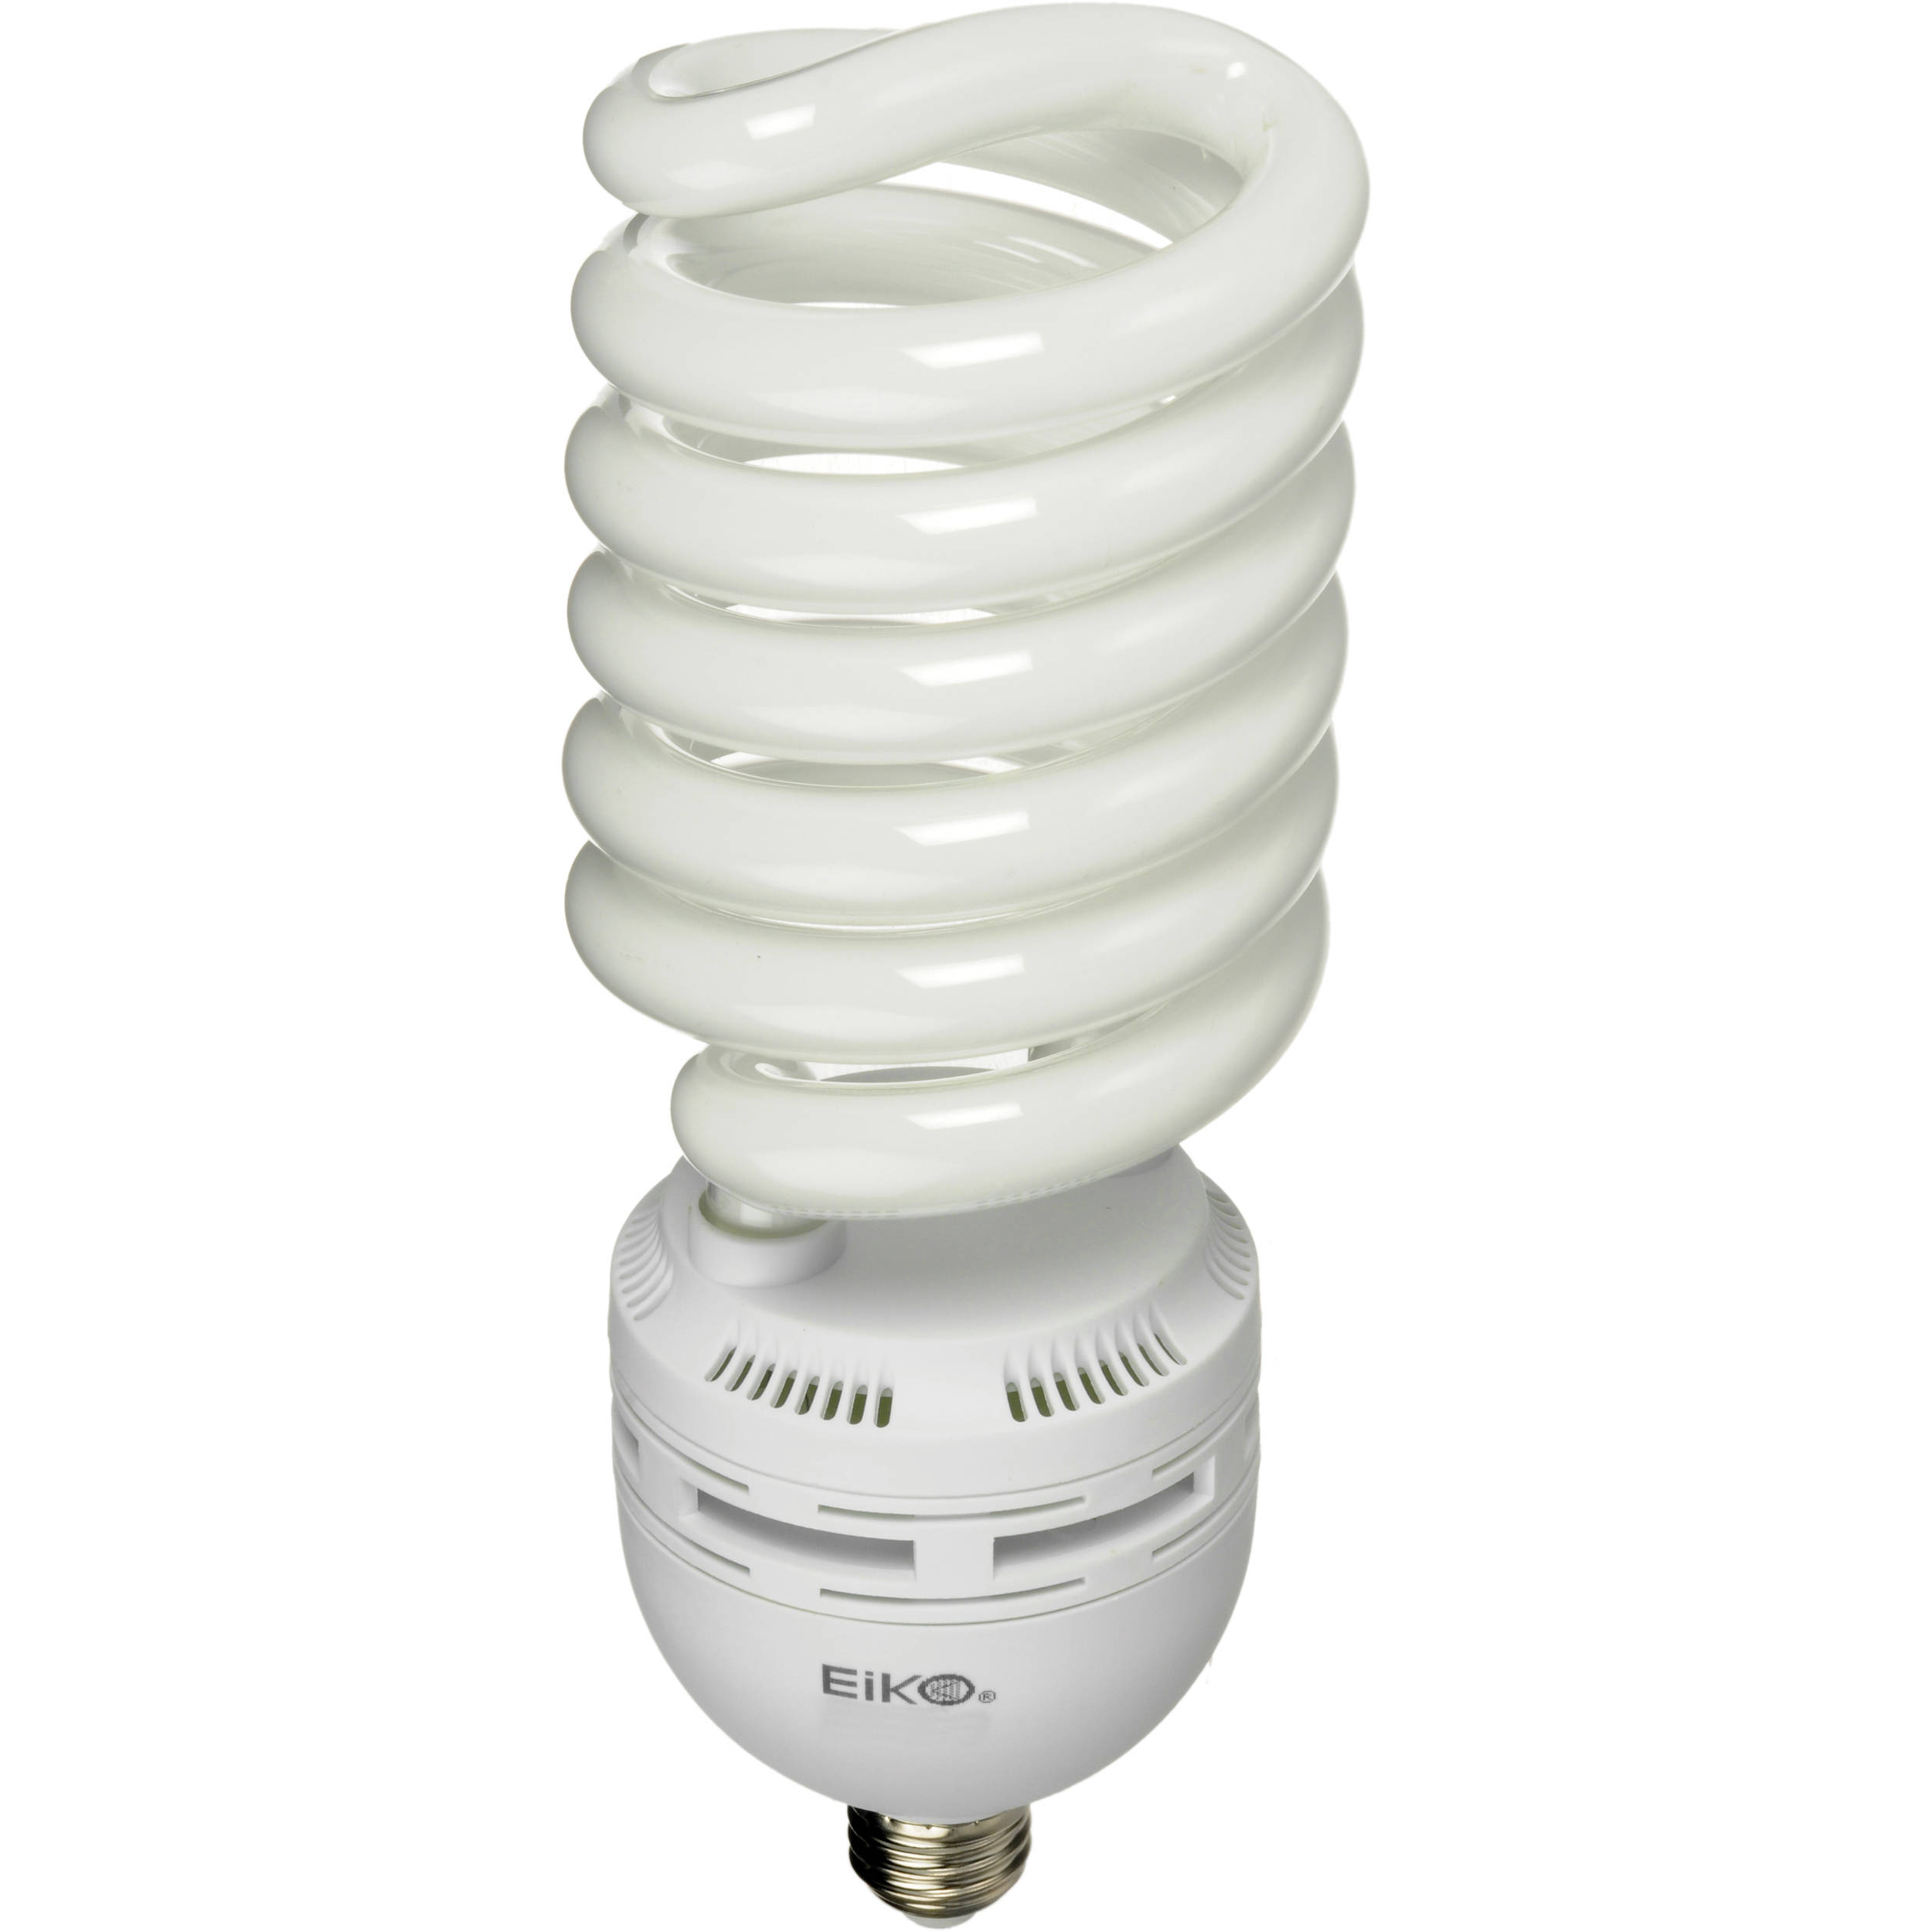 white reques pinterest philips lighting us identify bulb ever johncow measurements equivalent been cfl x you spiral for have pin low light my wattage bright dangerous bulbs